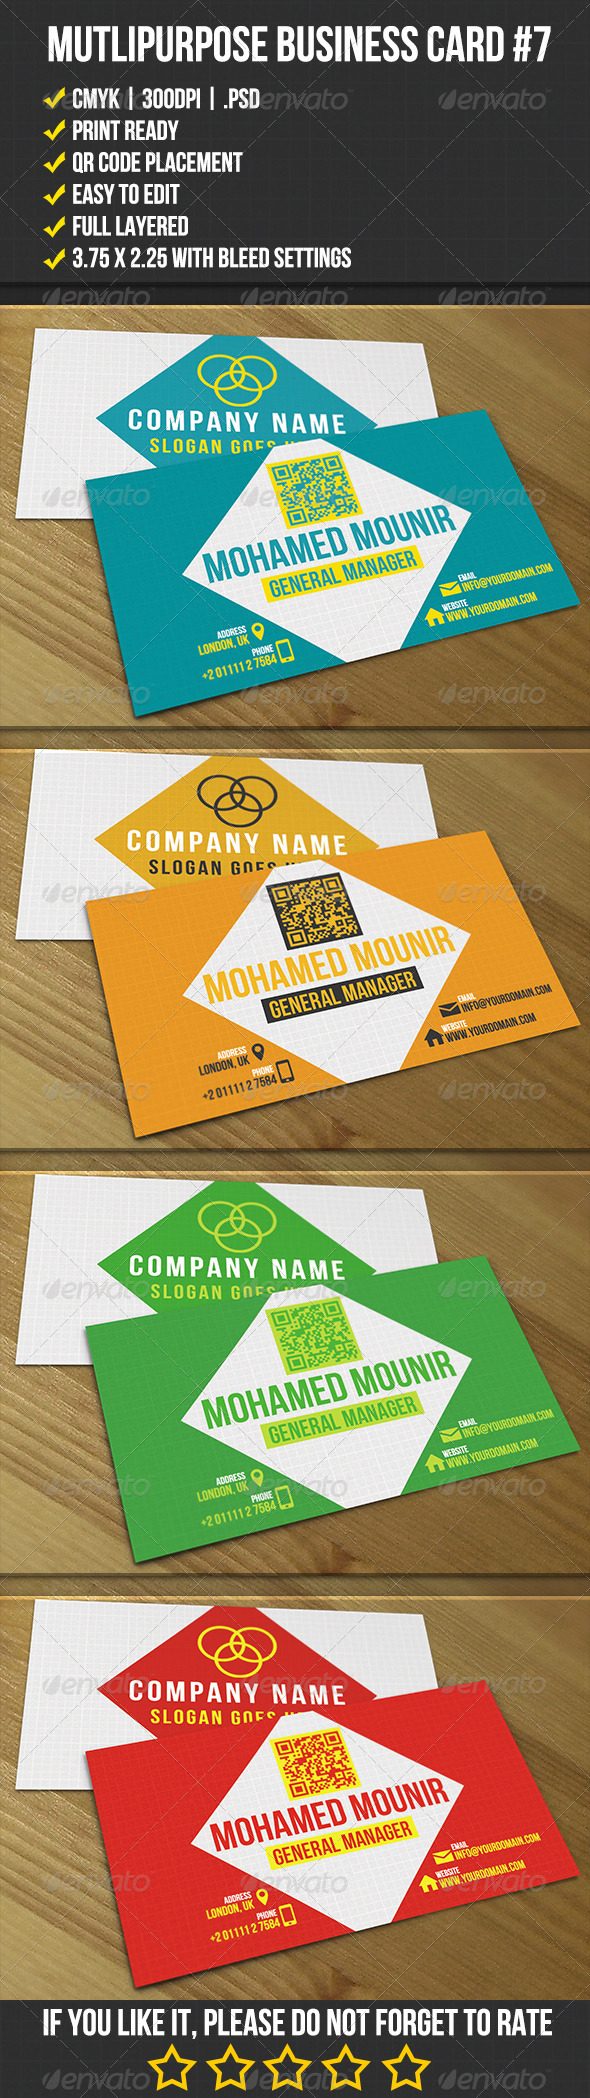 Multipurpose Business Card 7 - Corporate Business Cards